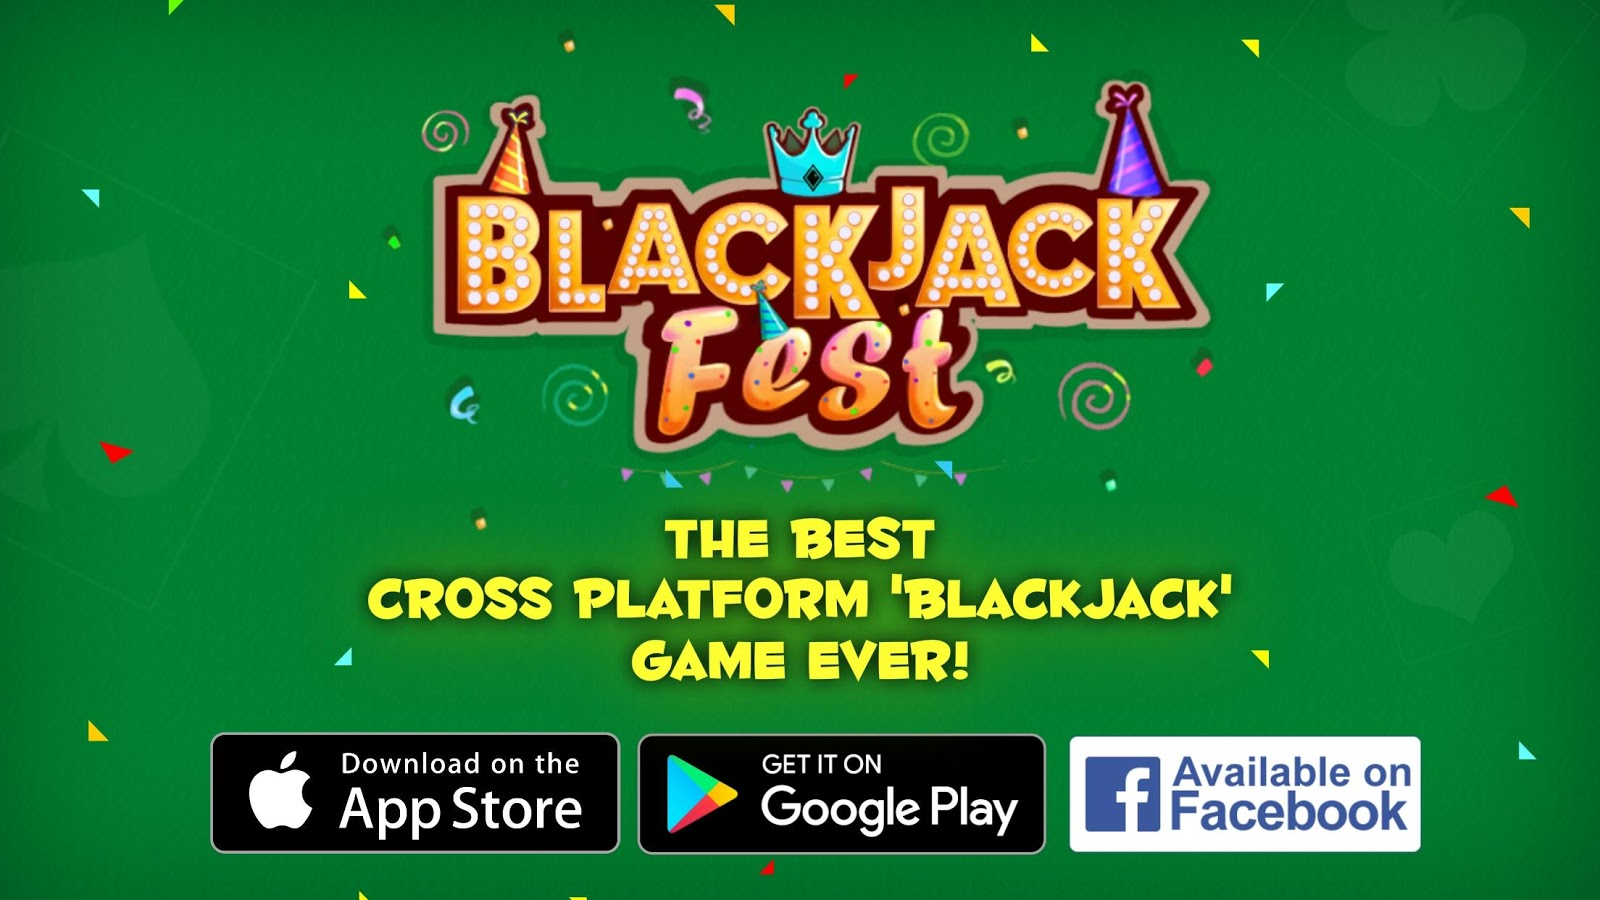 Blackjack Fest : Casino Blackjack 21 Card Games- screenshot